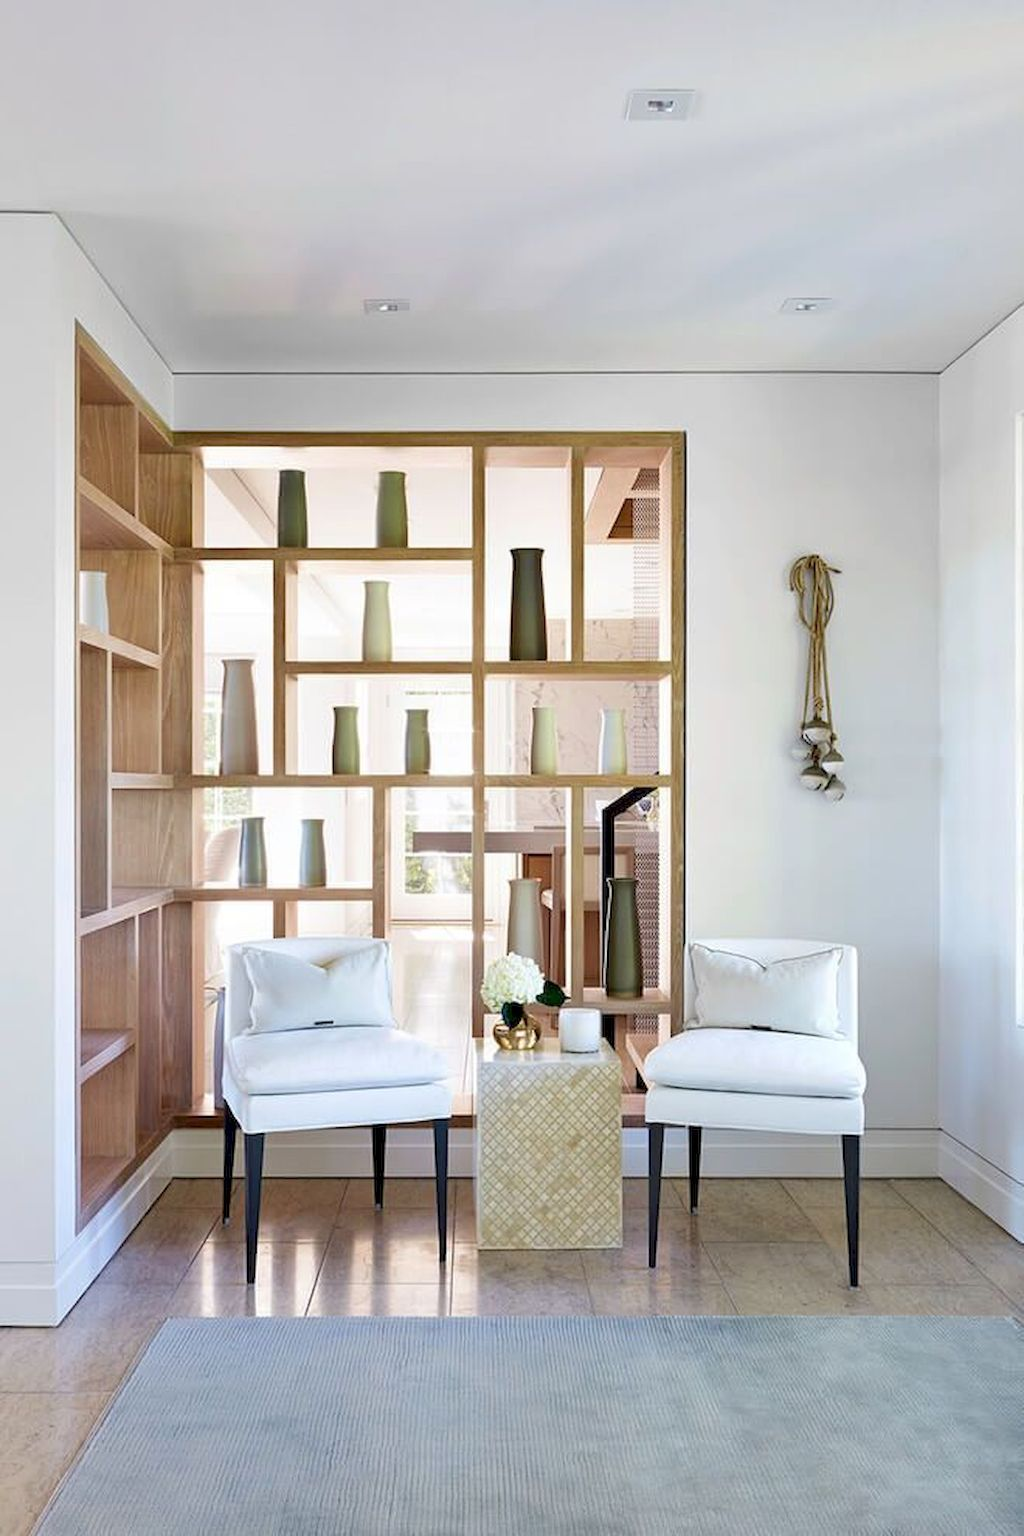 Spectacular Room Divider Concepts That Can Be Utilized in Apartments images